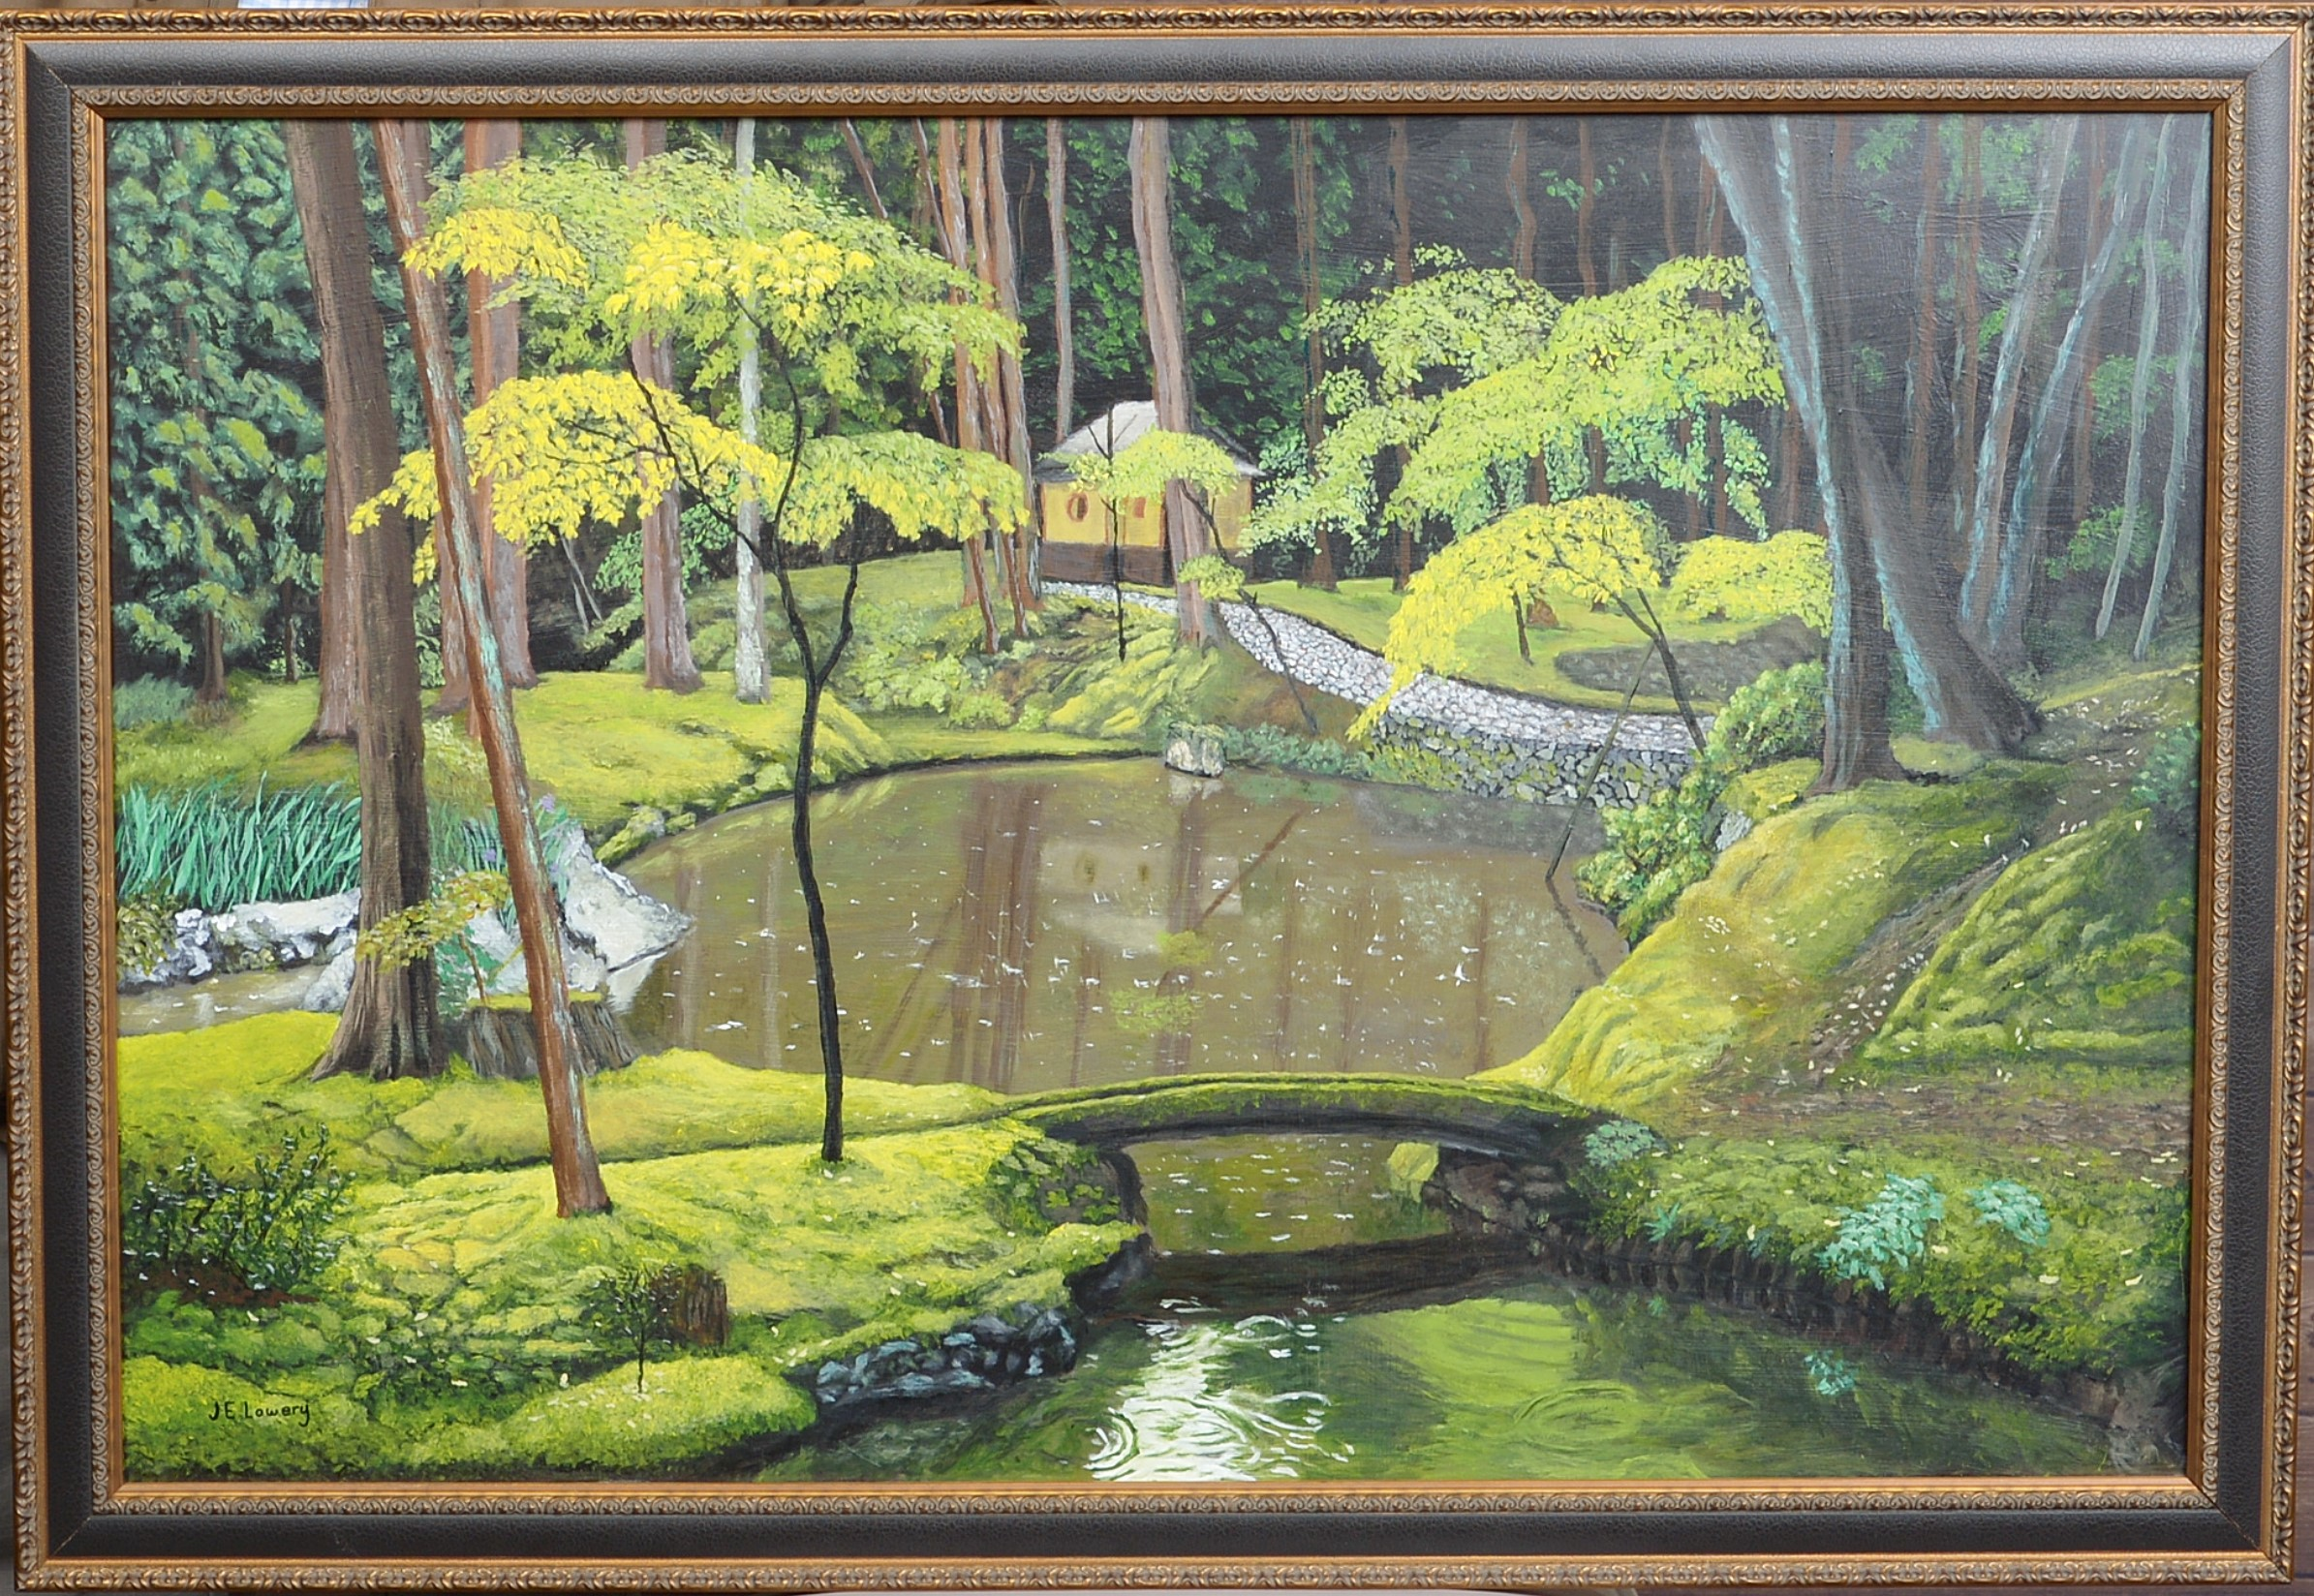 Teahouse In Autumn Rain artwork by James Lowery - art listed for sale on Artplode